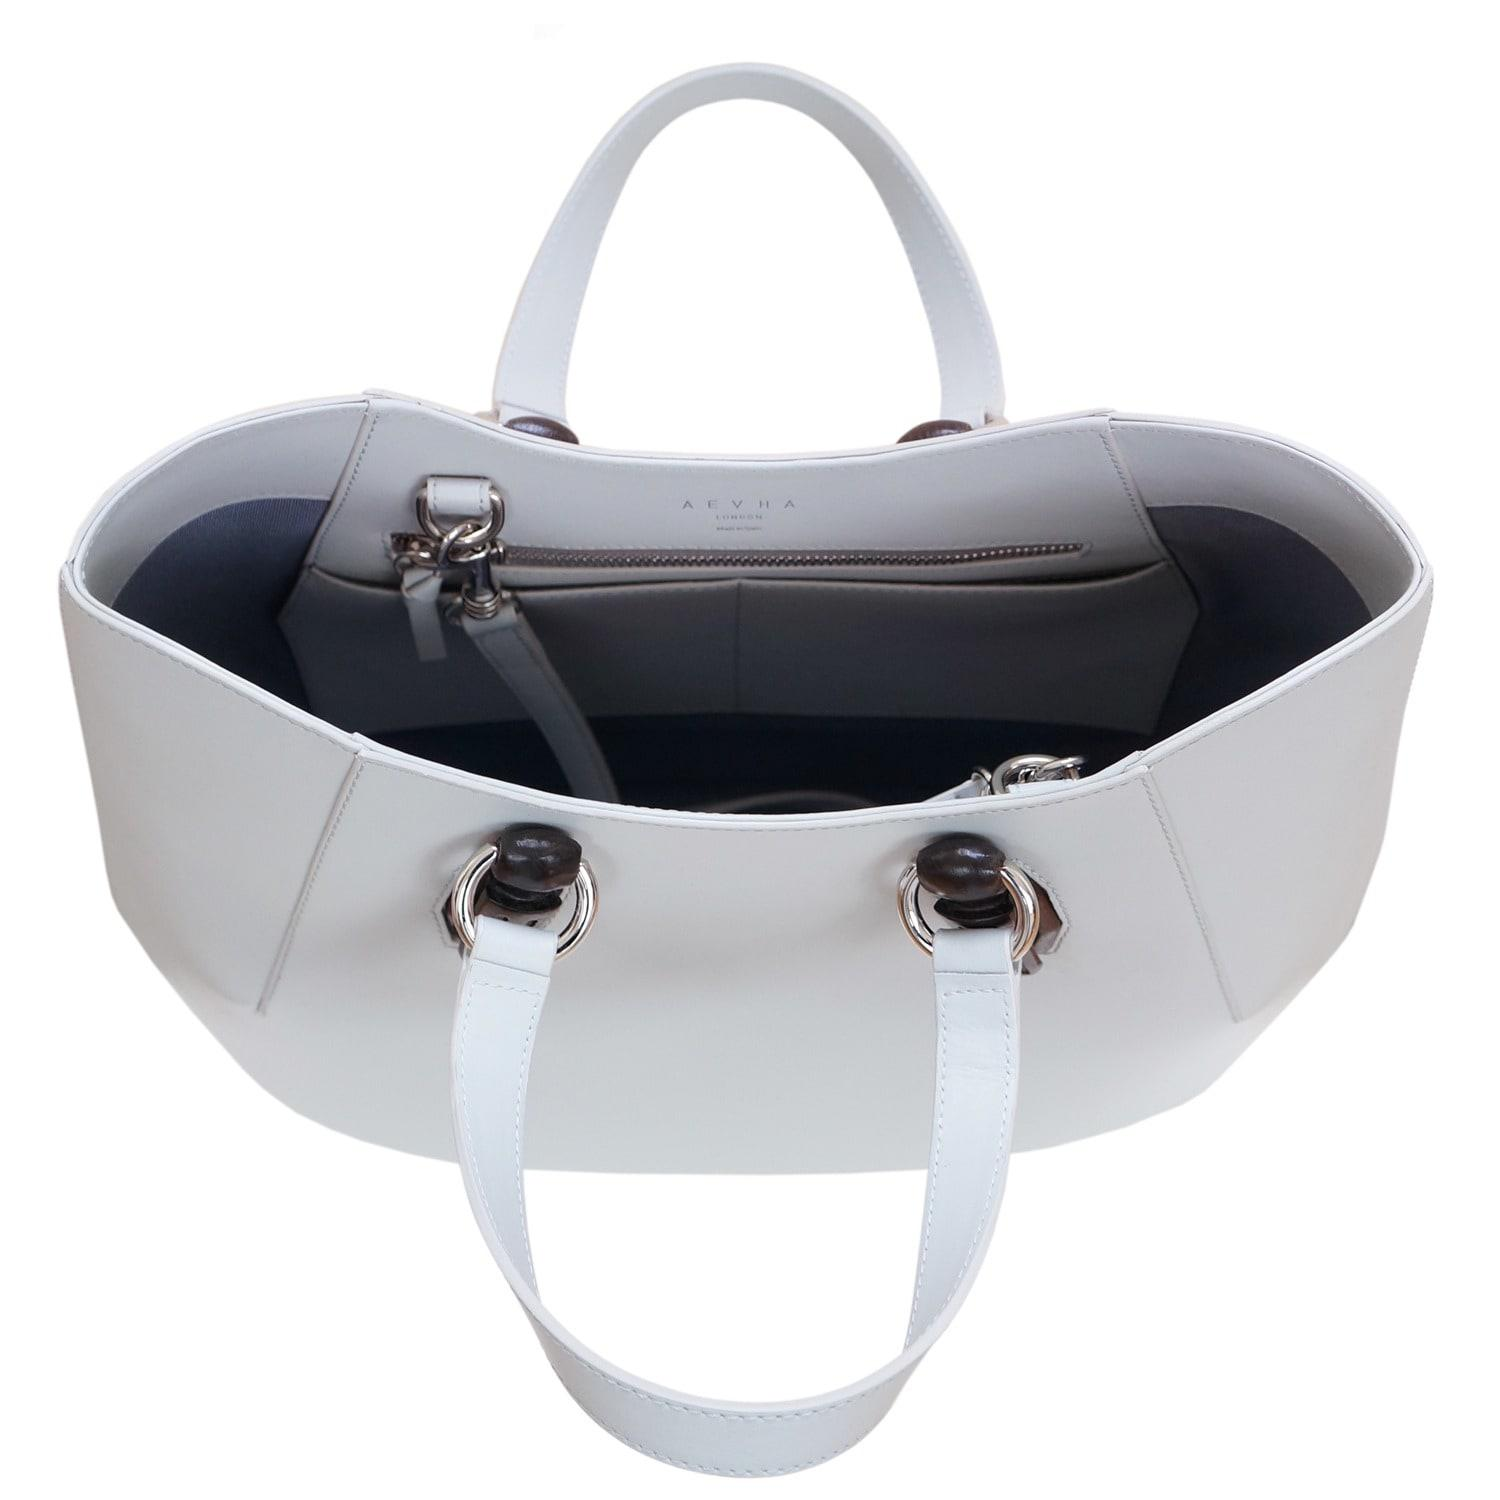 AEVHA Leather Garnet Tote In Dove With Wooden Hardware in Grey (Grey)